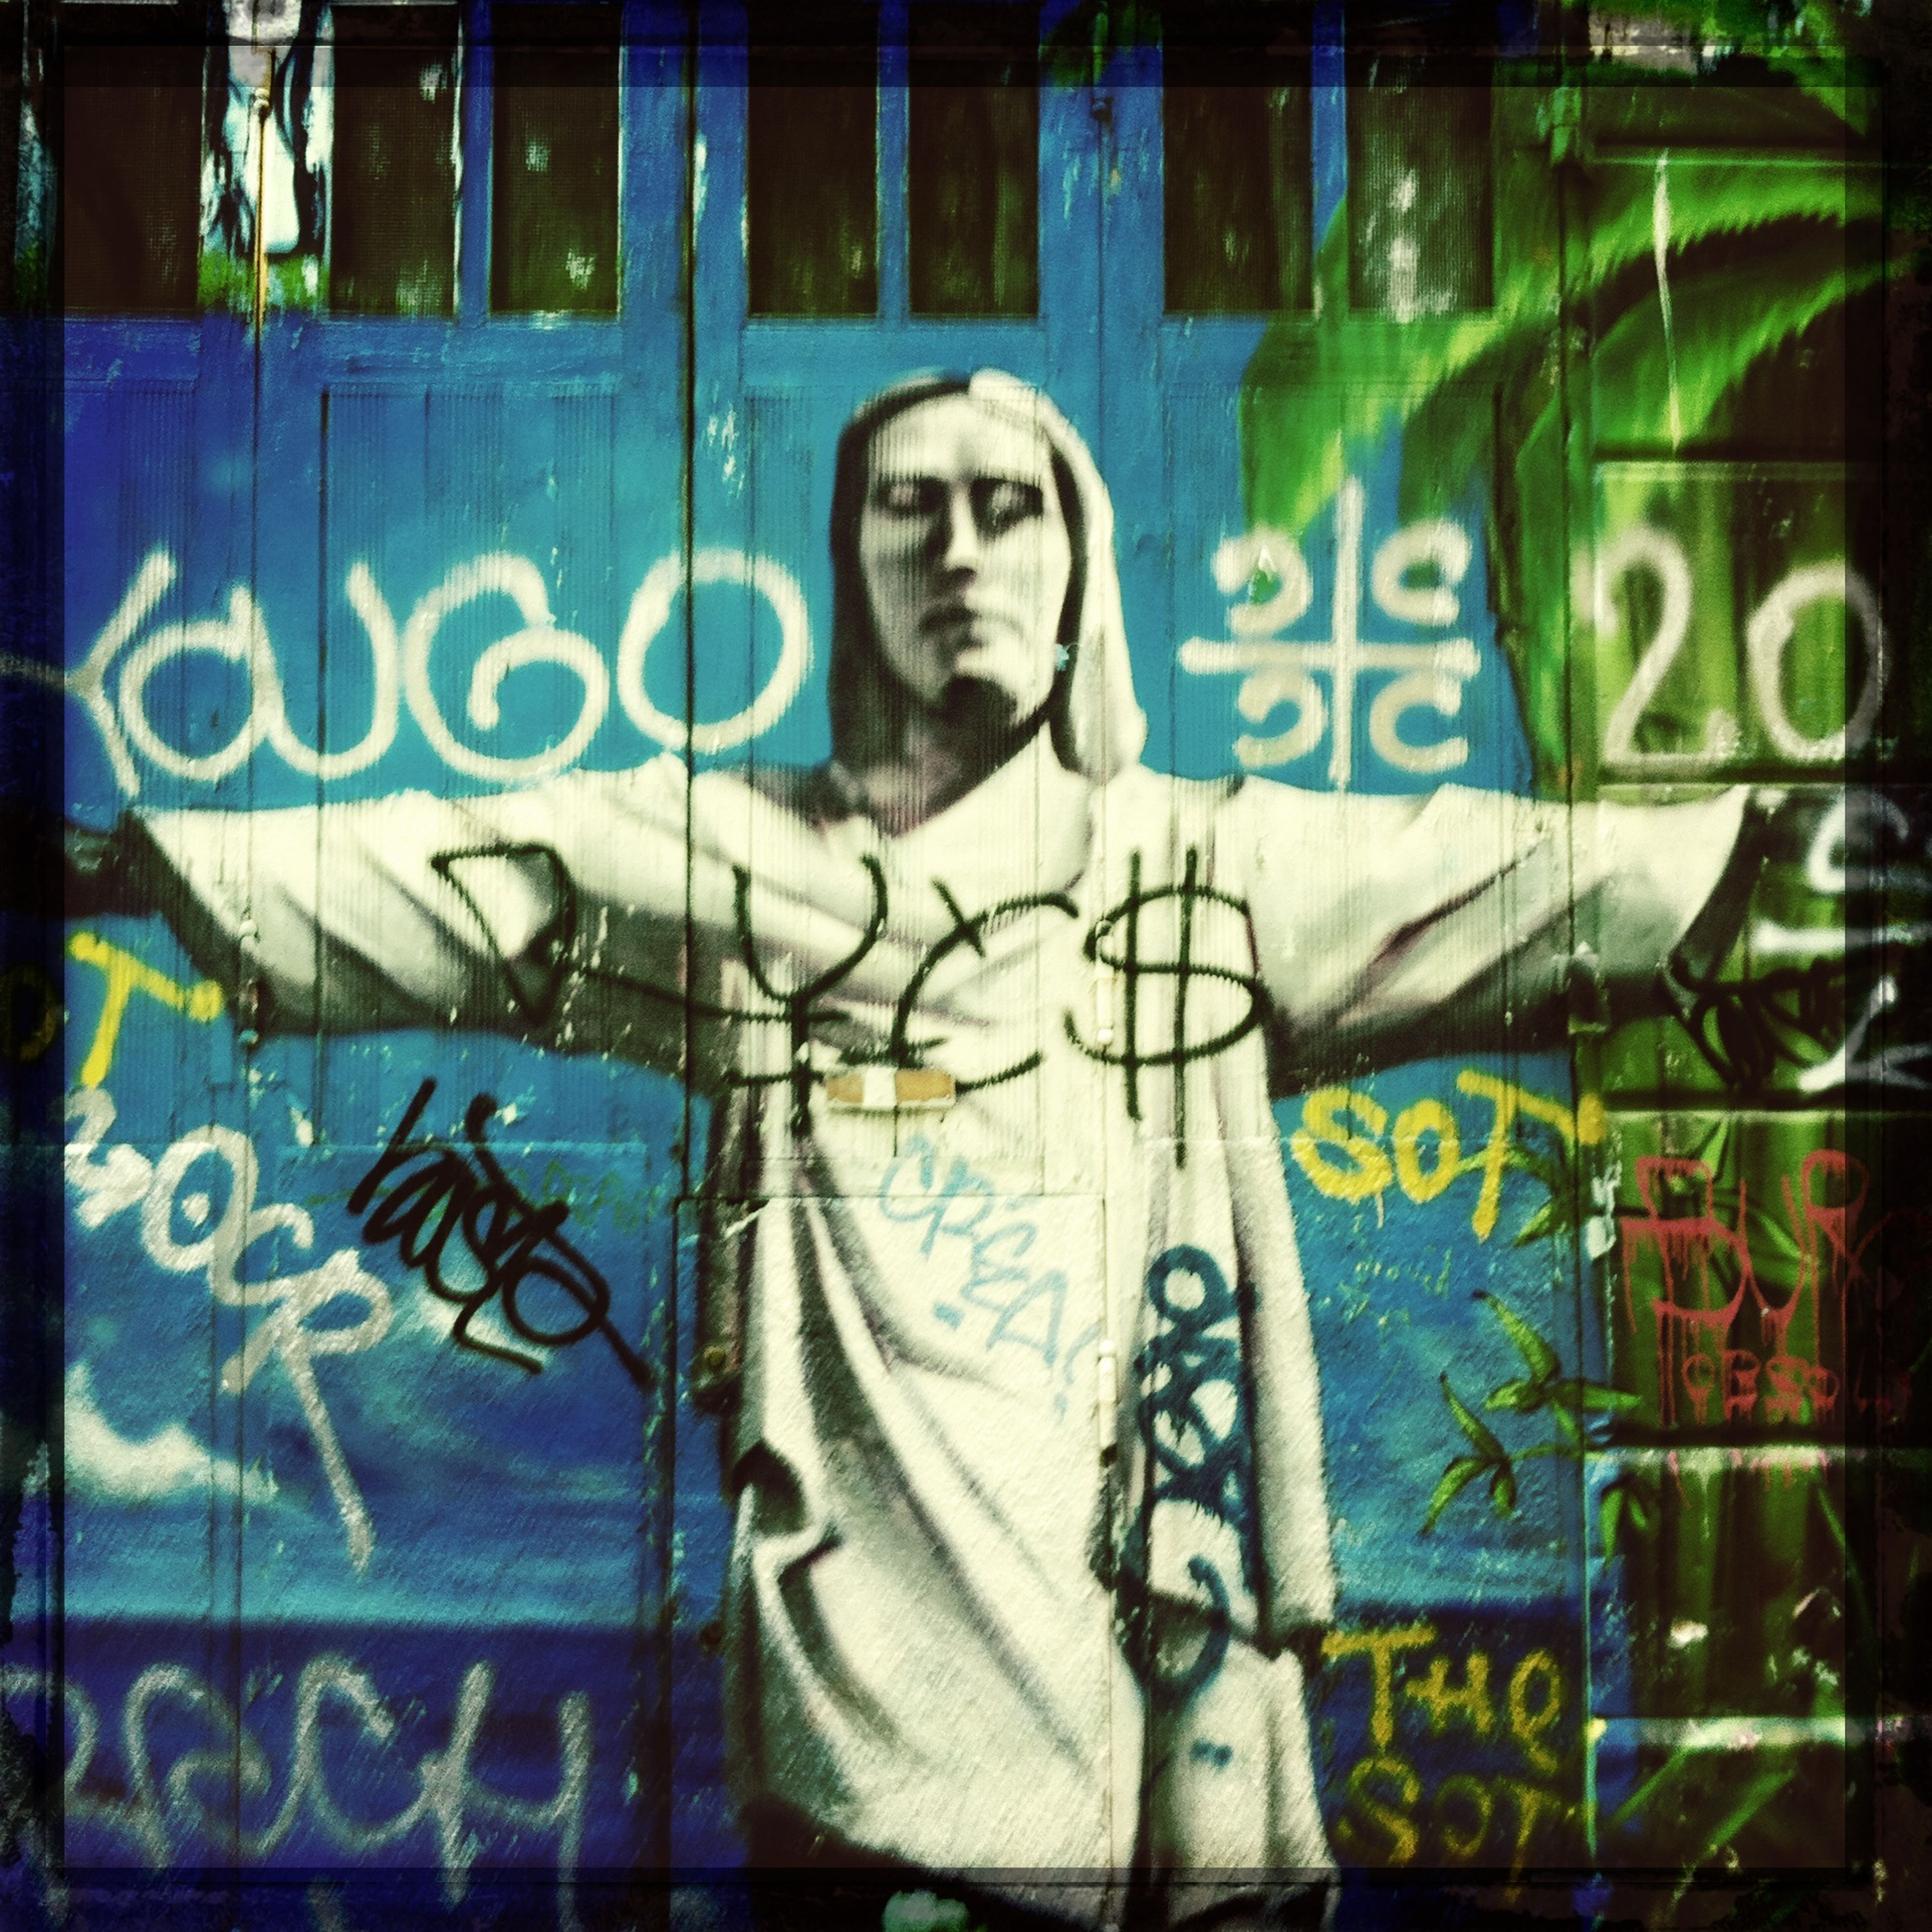 graffiti, art, text, creativity, art and craft, wall - building feature, western script, built structure, architecture, street art, communication, wall, human representation, indoors, multi colored, one person, vandalism, building exterior, painting, mural